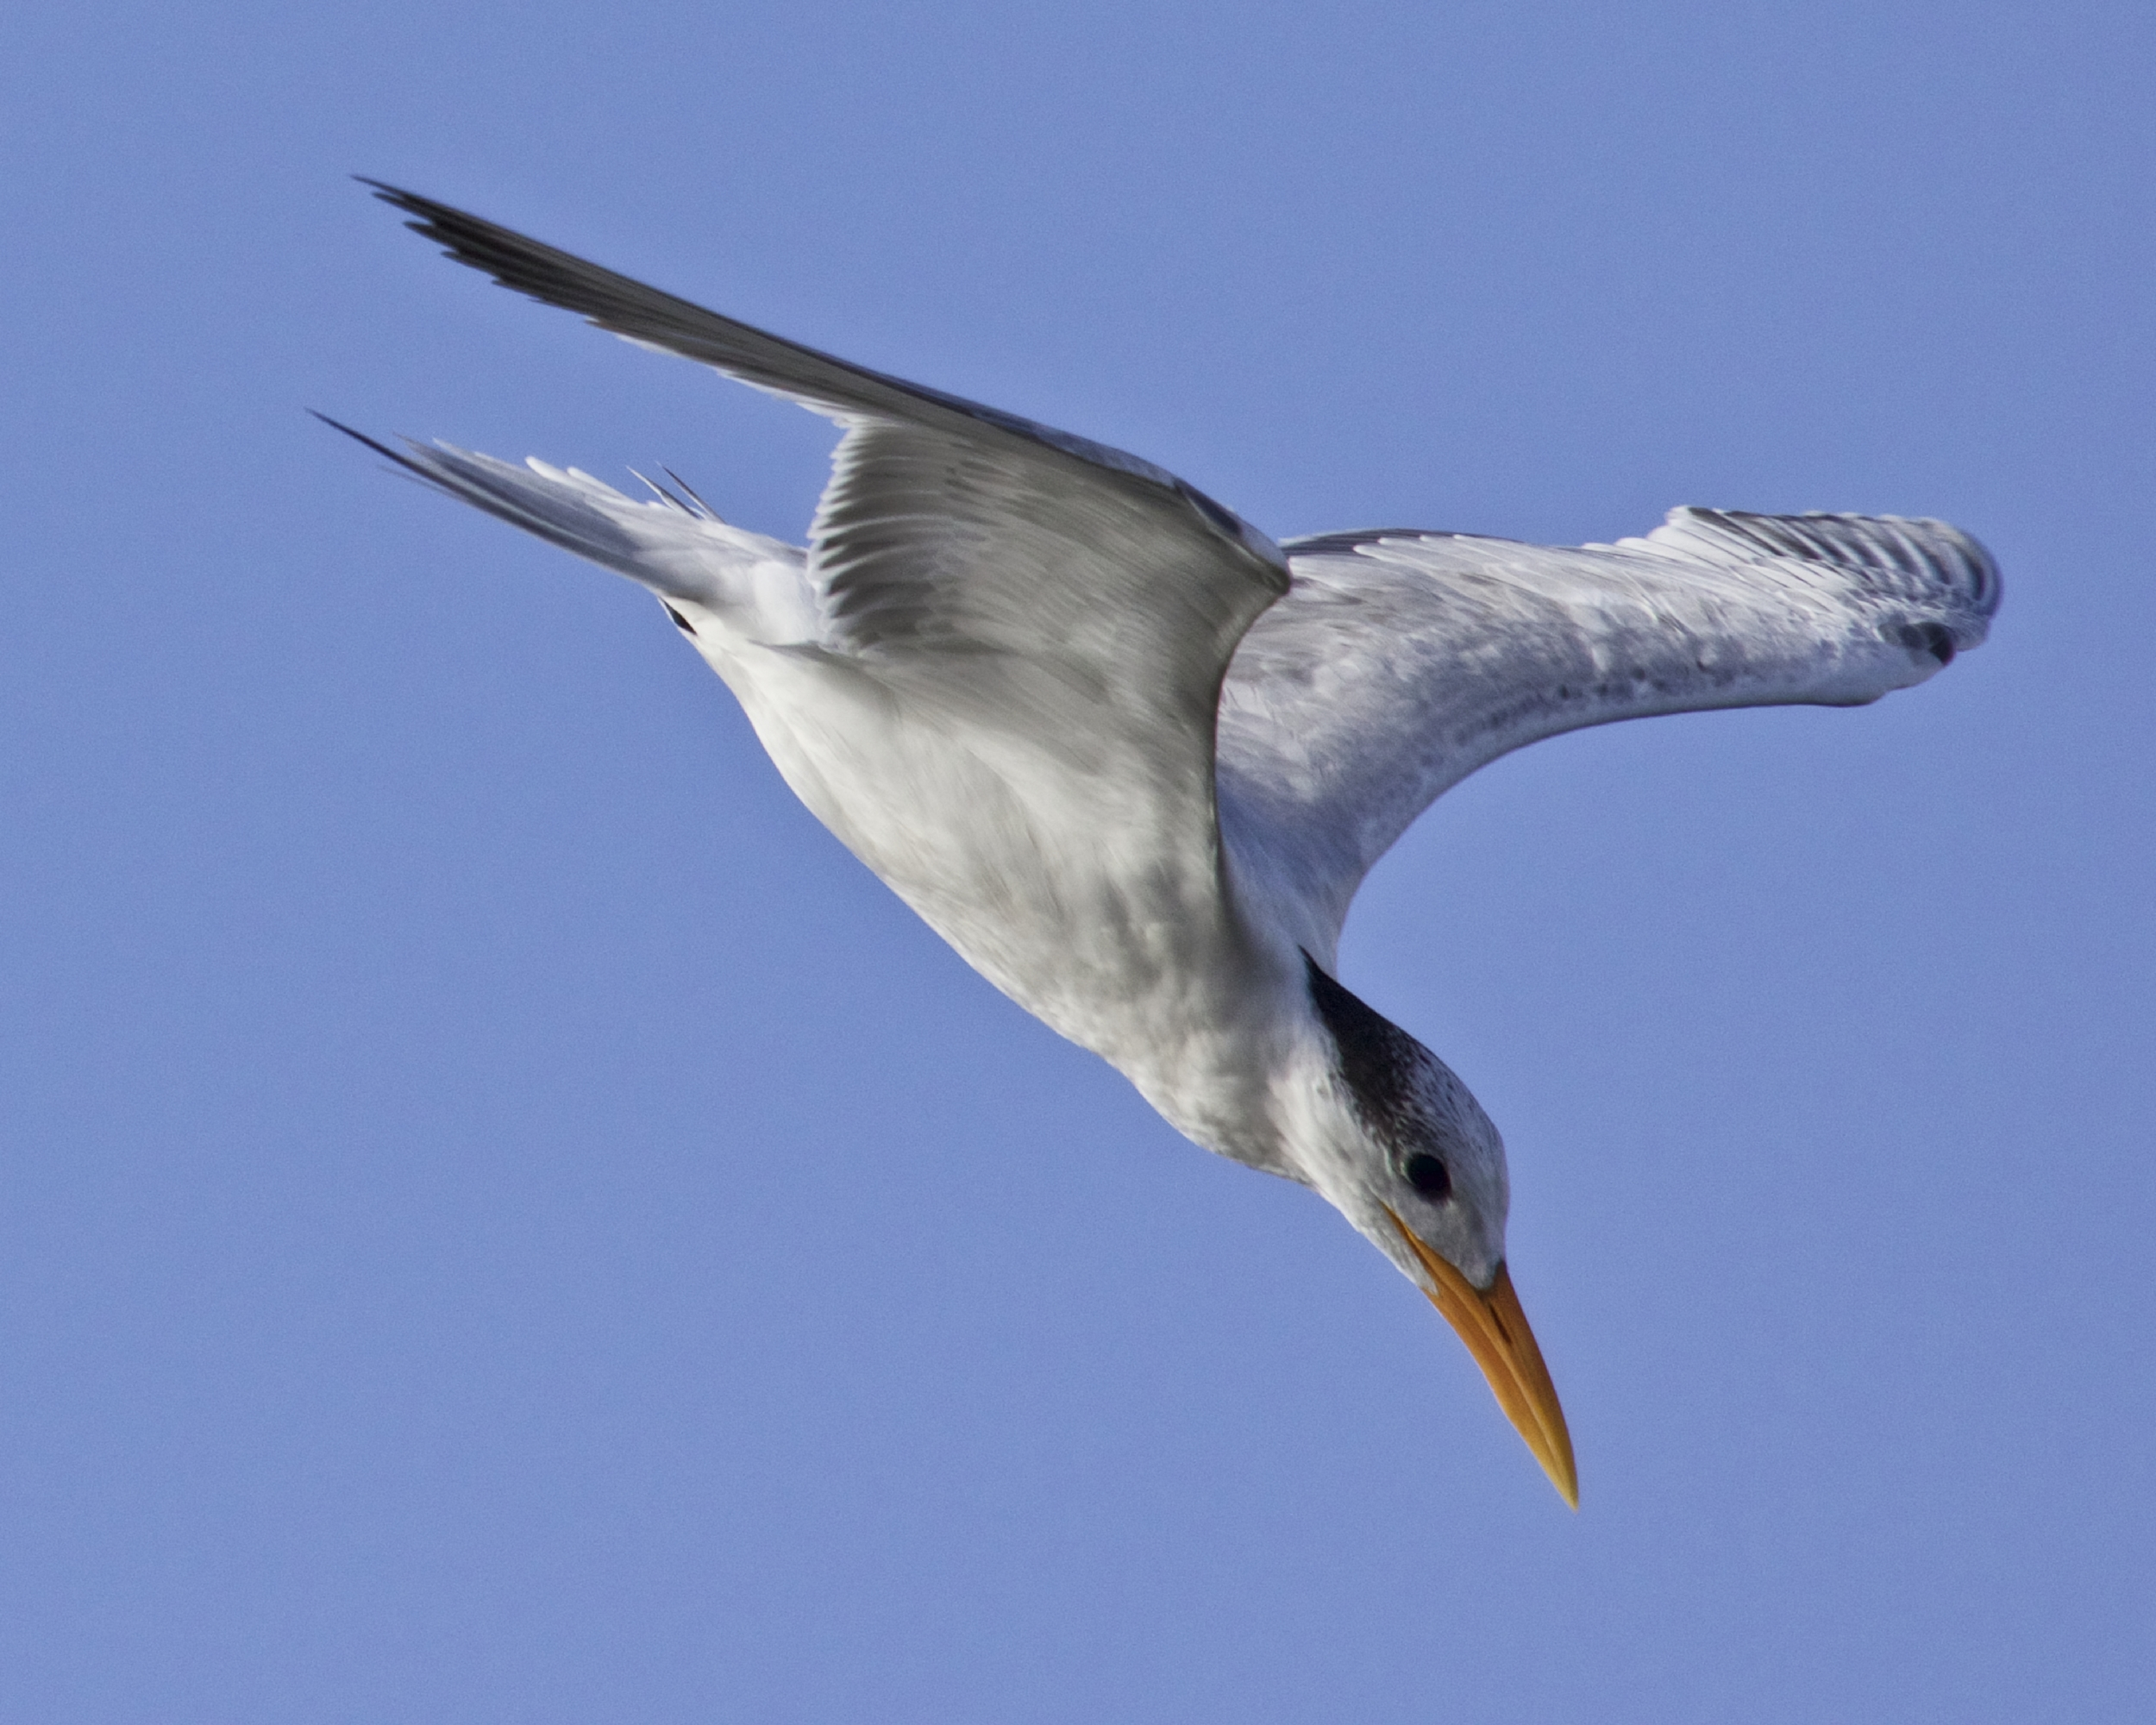 A Royal Terns spots a fish and goes into a dive..